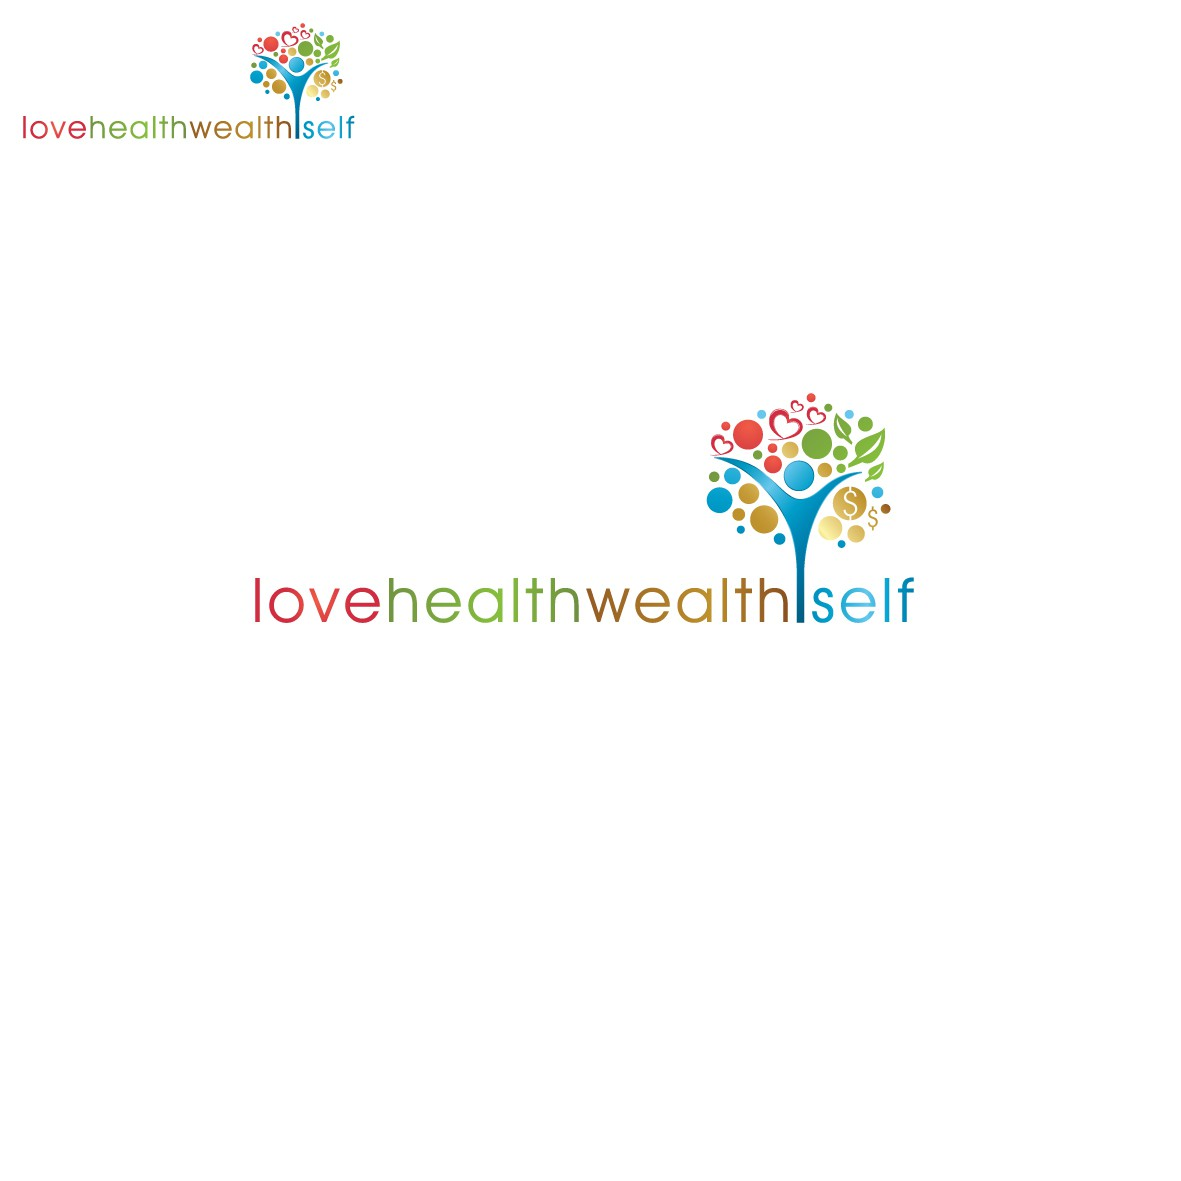 Help Love Health Wealth Self with a new logo